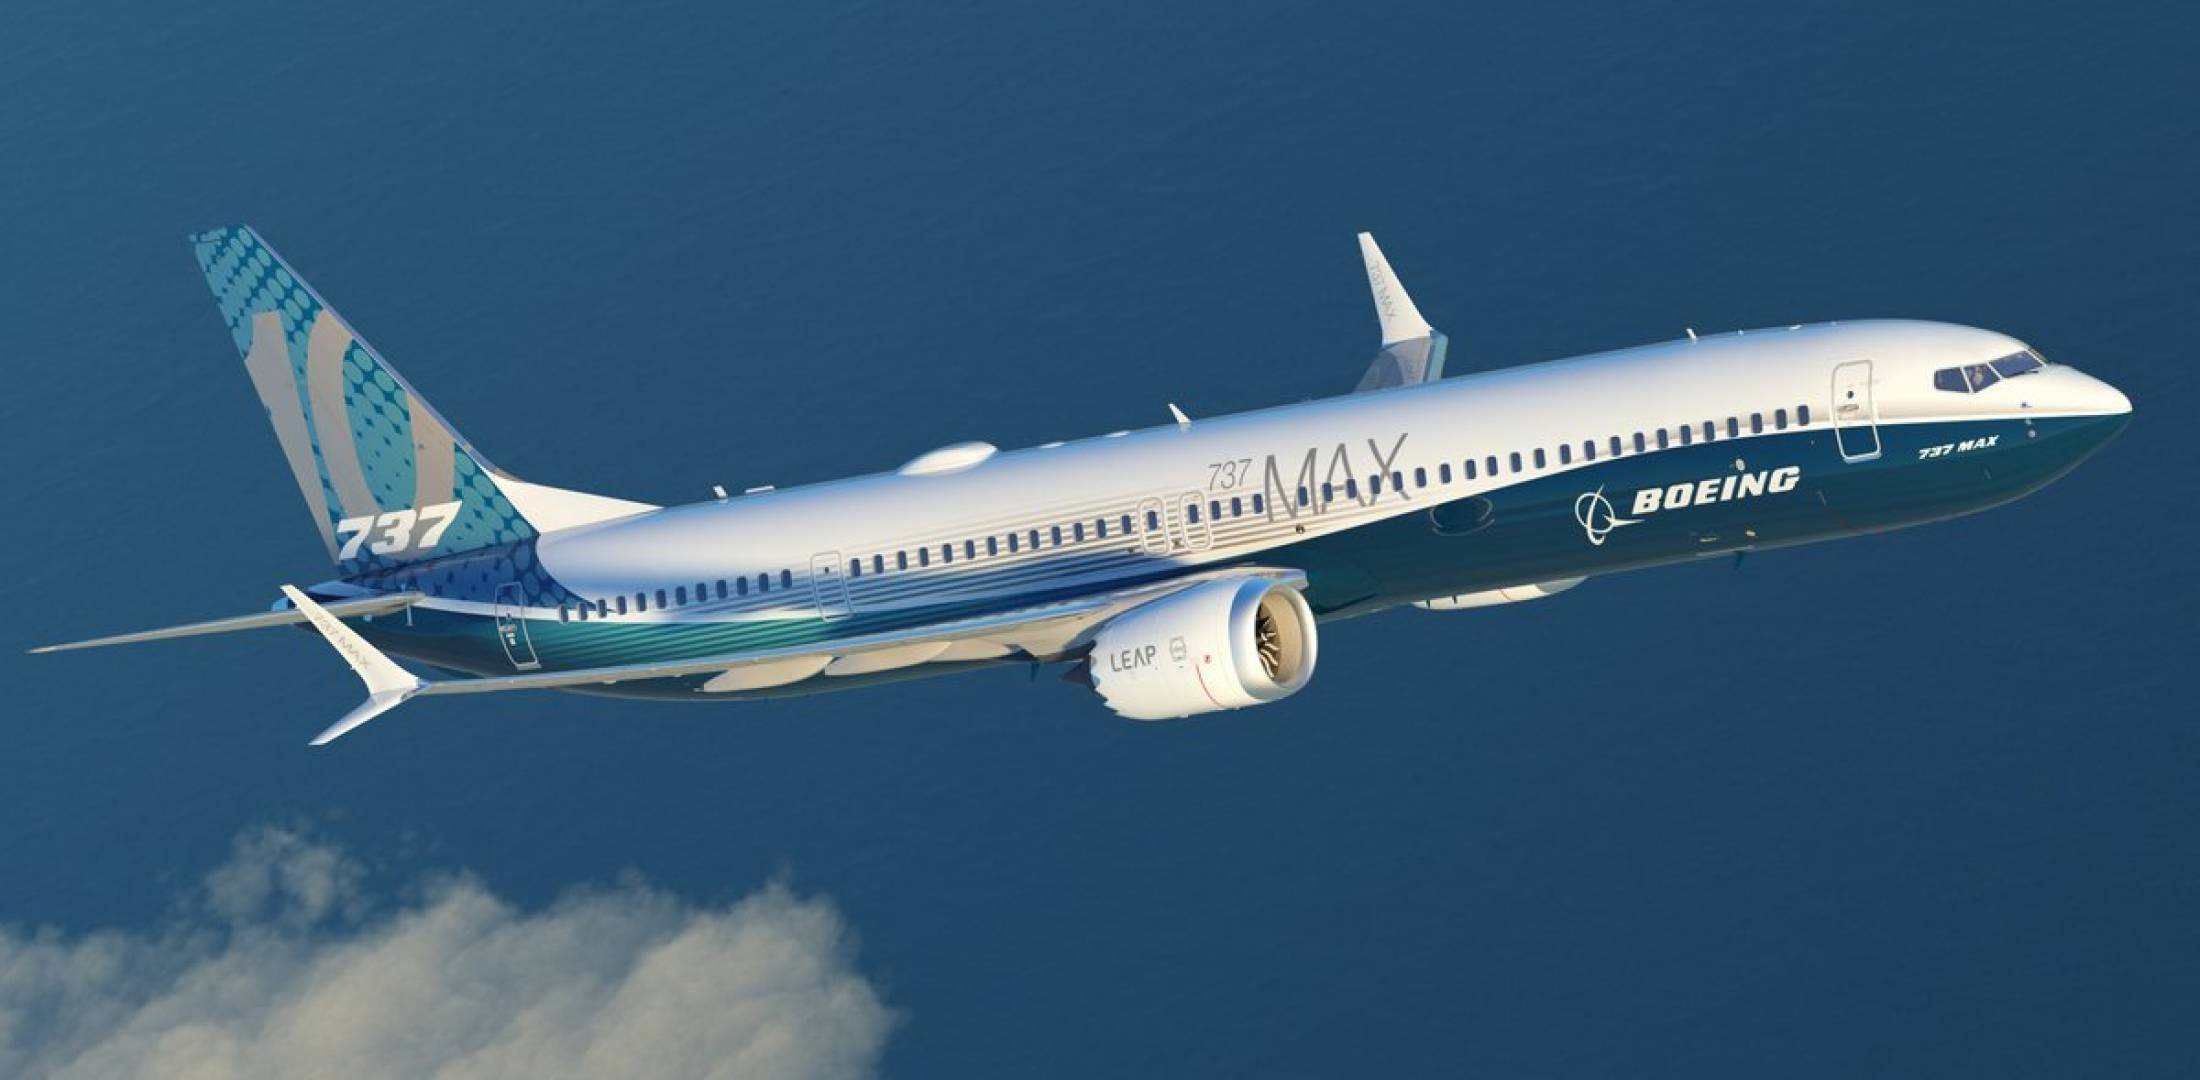 Boeing released this image of the proposed new 737 Max 10 narrowbody  airliner at the ISTAT Americas conference this week.